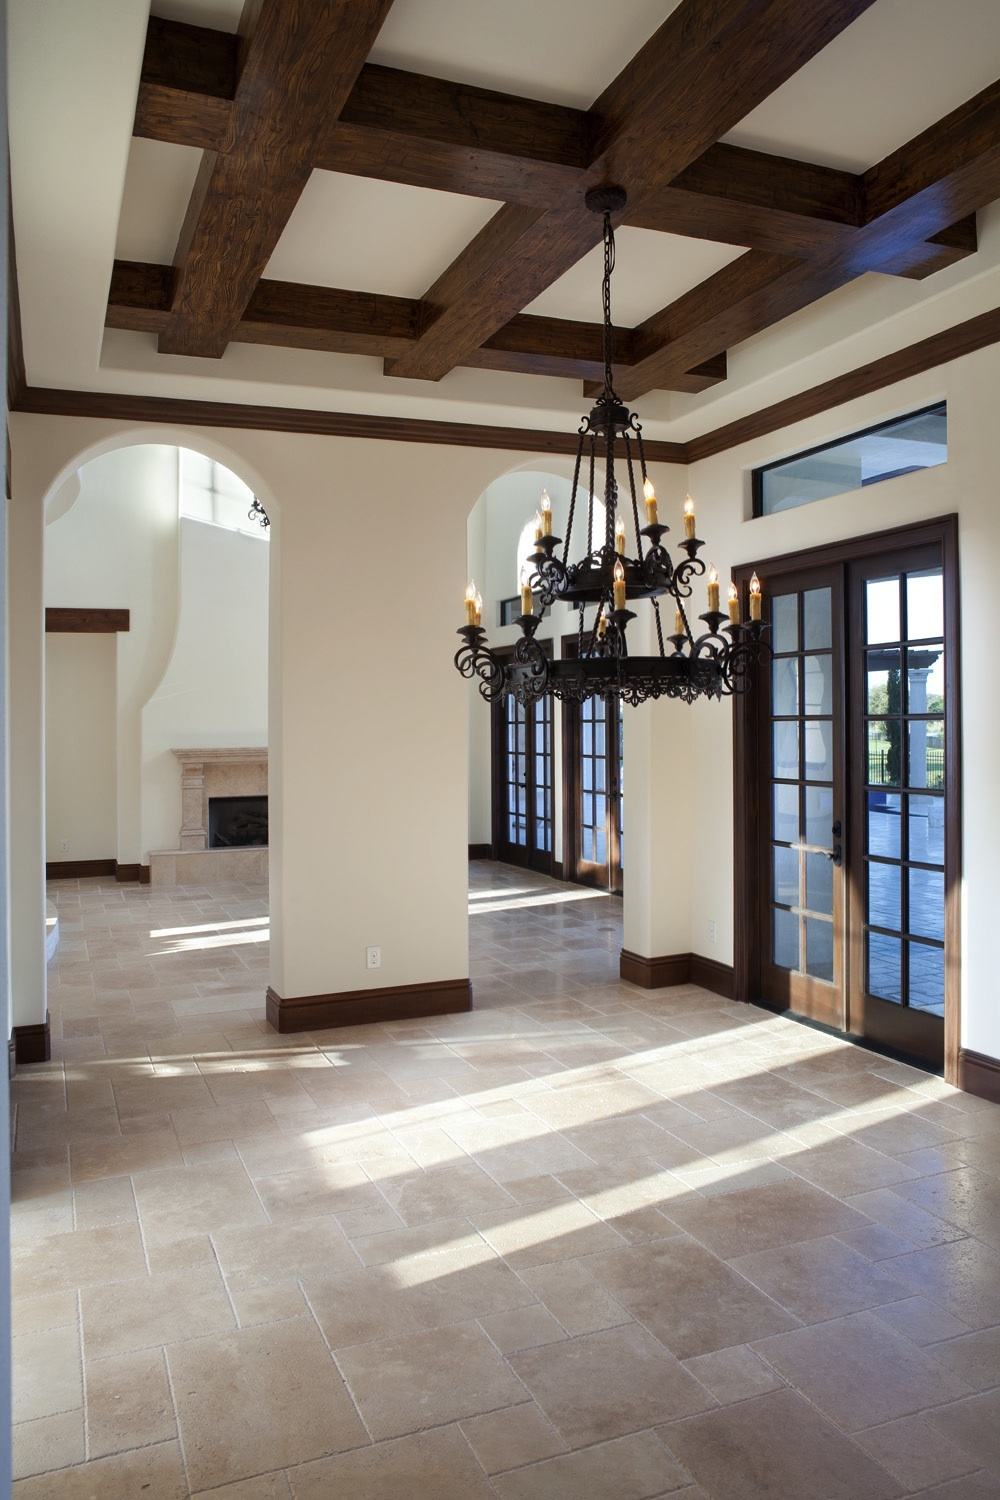 Fake Ceiling Beams ~ Faux wood beams for affordable architectural details